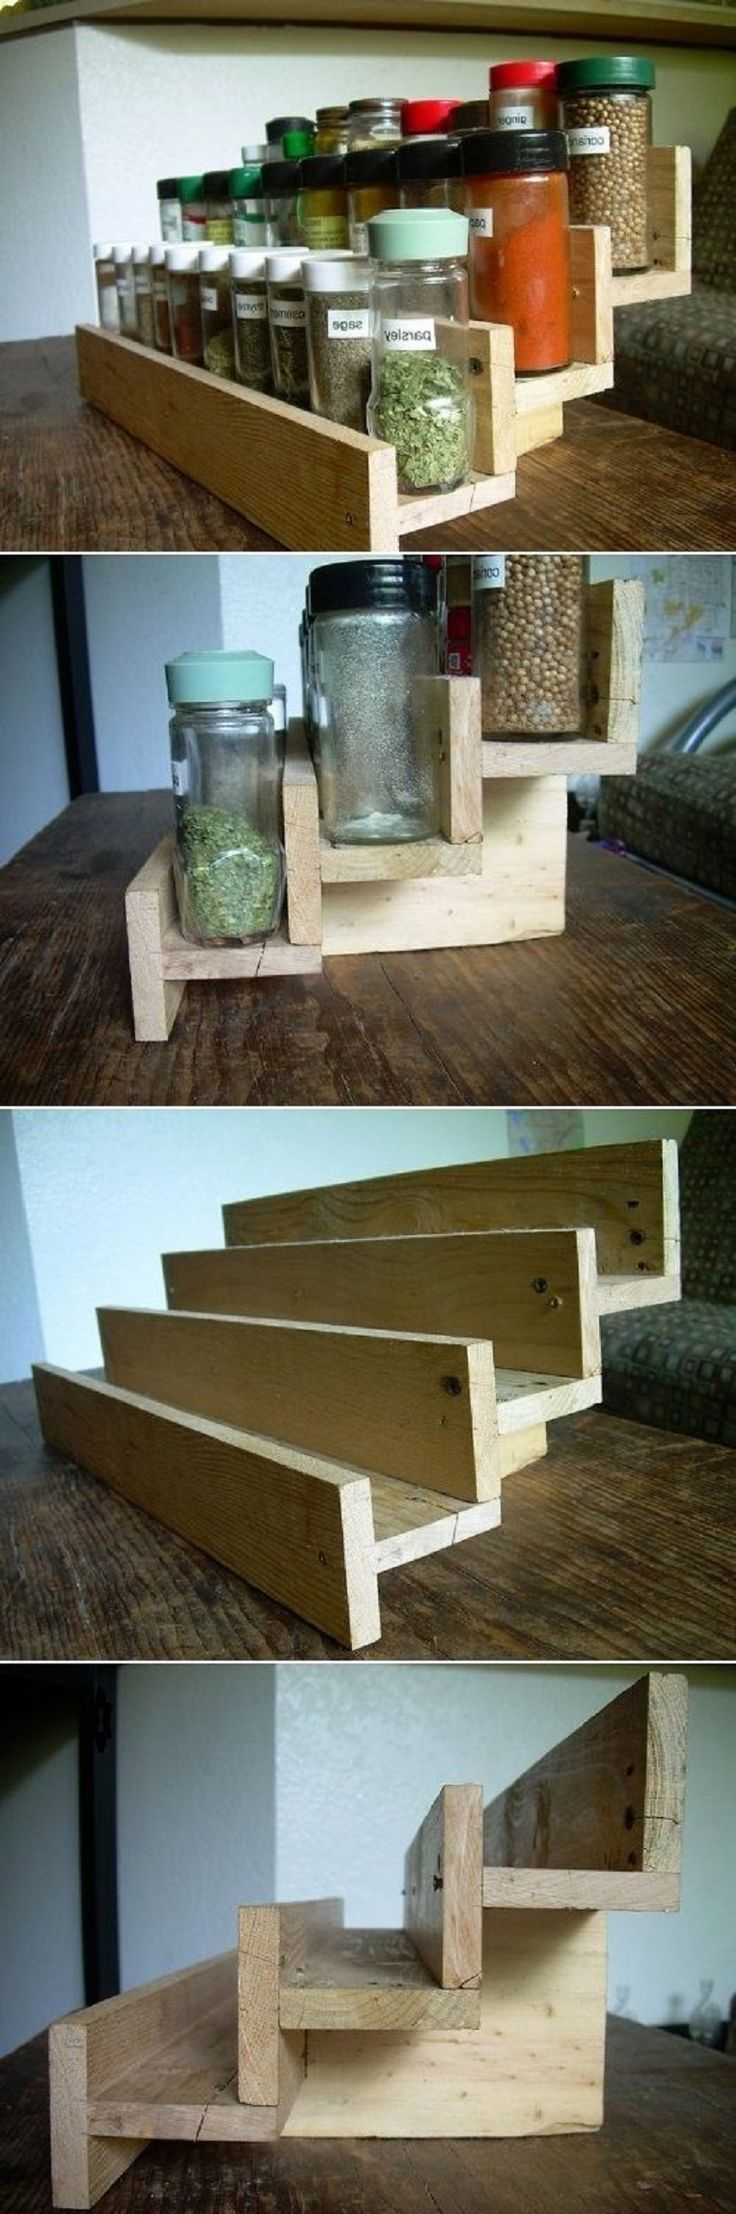 Shelves Made From Pallets 103 Best Wood Projects Images On Pinterest Woodwork Wood